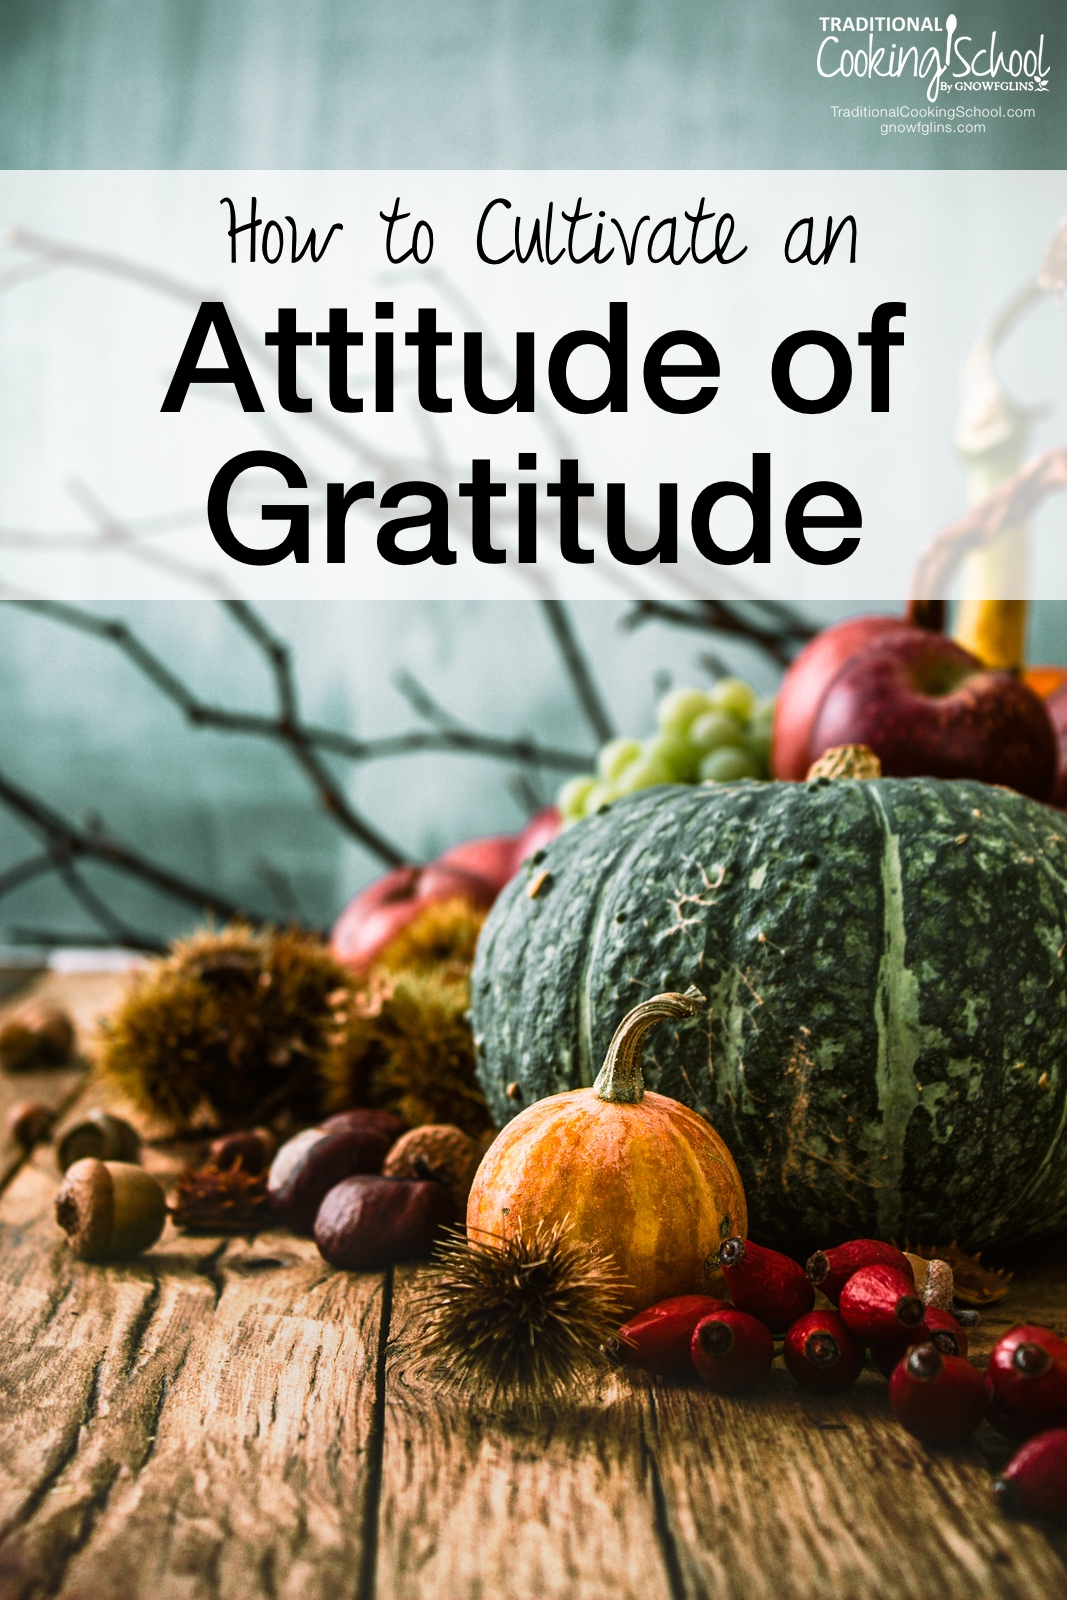 How to Cultivate an Attitude of Gratitude | Maintaining an attitude of gratefulness? That can be a challenge for anyone. Life isn't always easy, but we can always choose to be grateful, no matter what our circumstances. Here are four ways in which I'm working to maintain an attitude of gratitude during this Thanksgiving season. | TraditionalCookingSchool.com